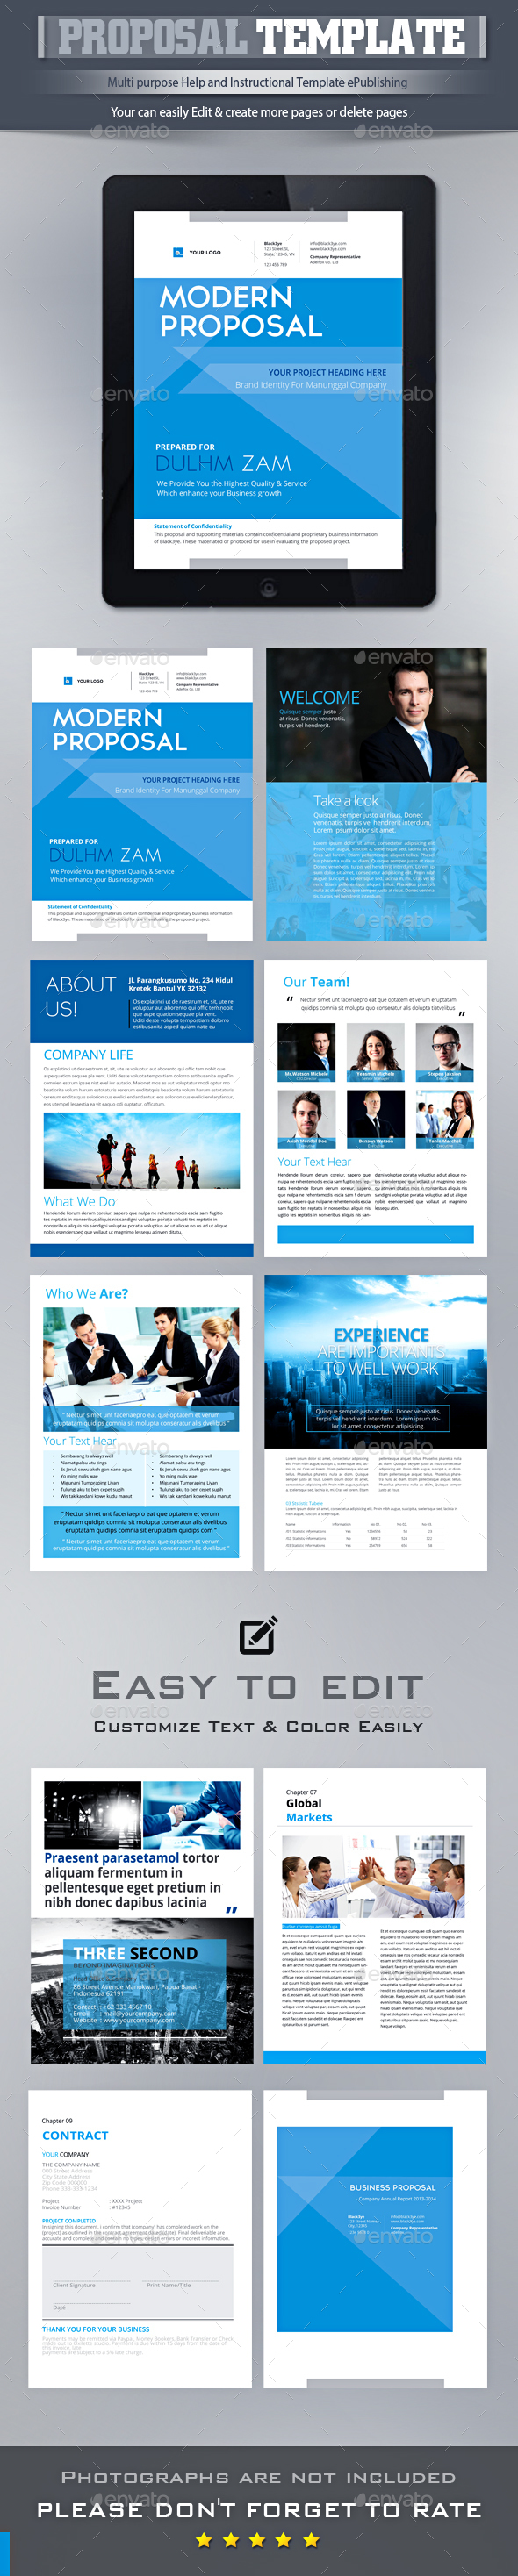 Book Template Indesign Free Download Image collections - Template ...